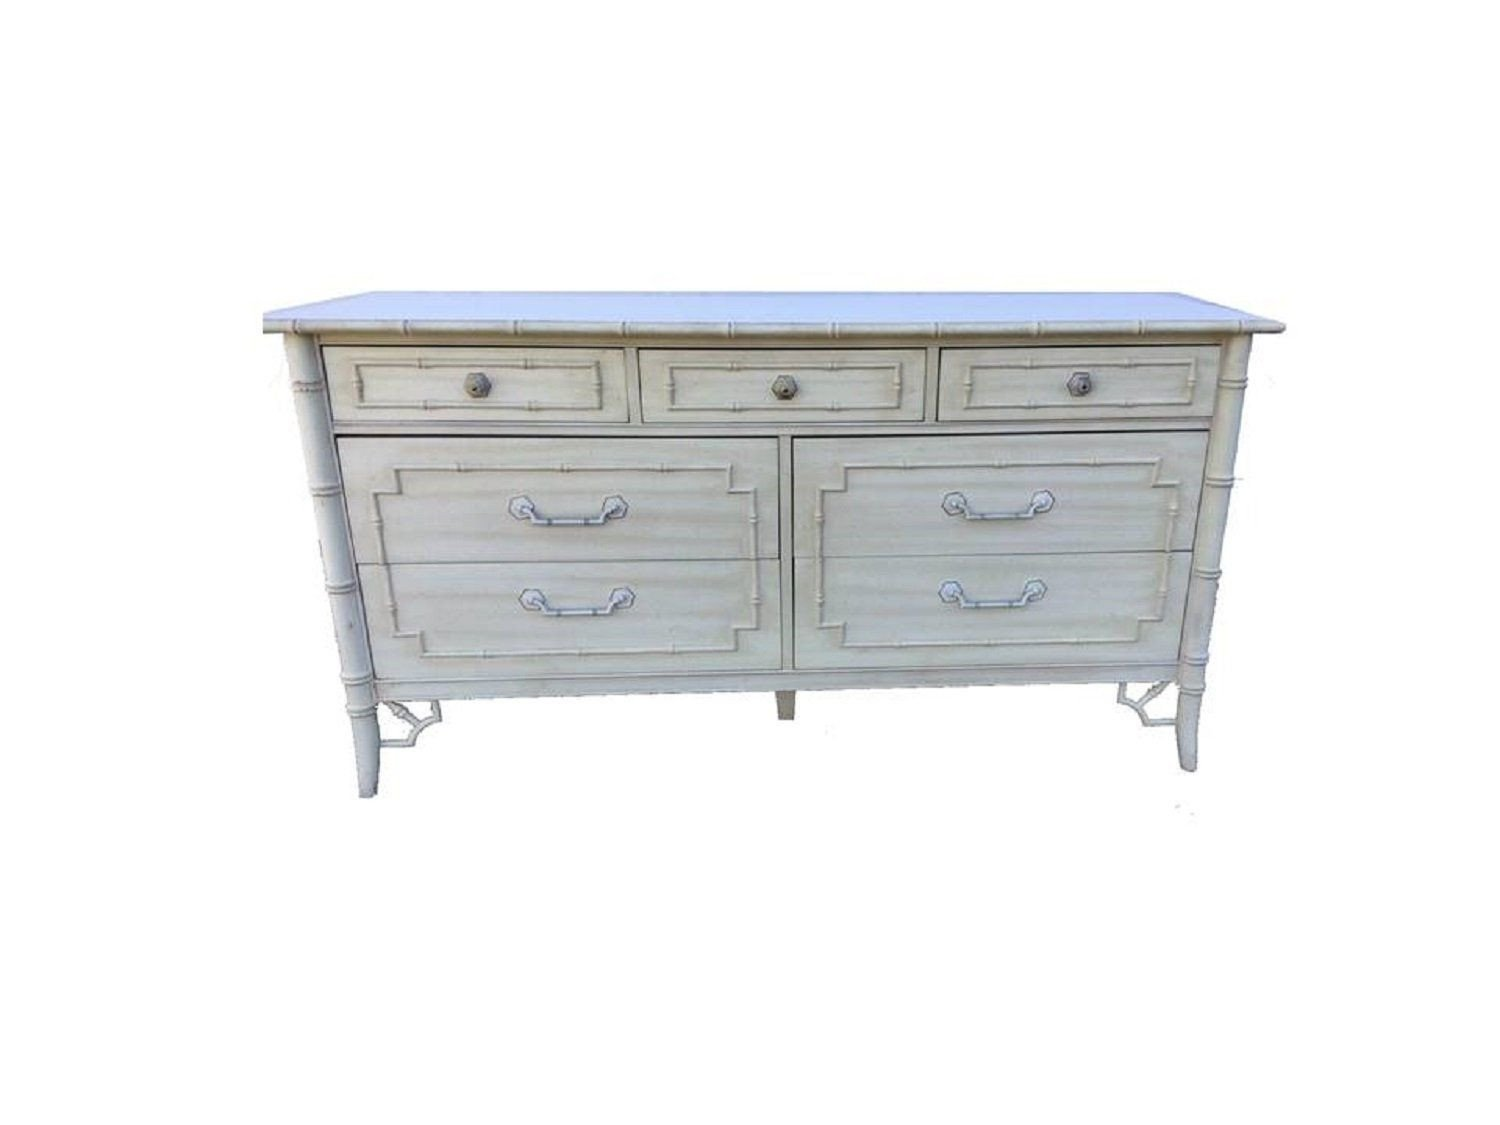 Vintage Thomasville Bedroom Furniture Elegant Thomasville Fretwork Allegro Faux Bamboo Dresser Palm Beach